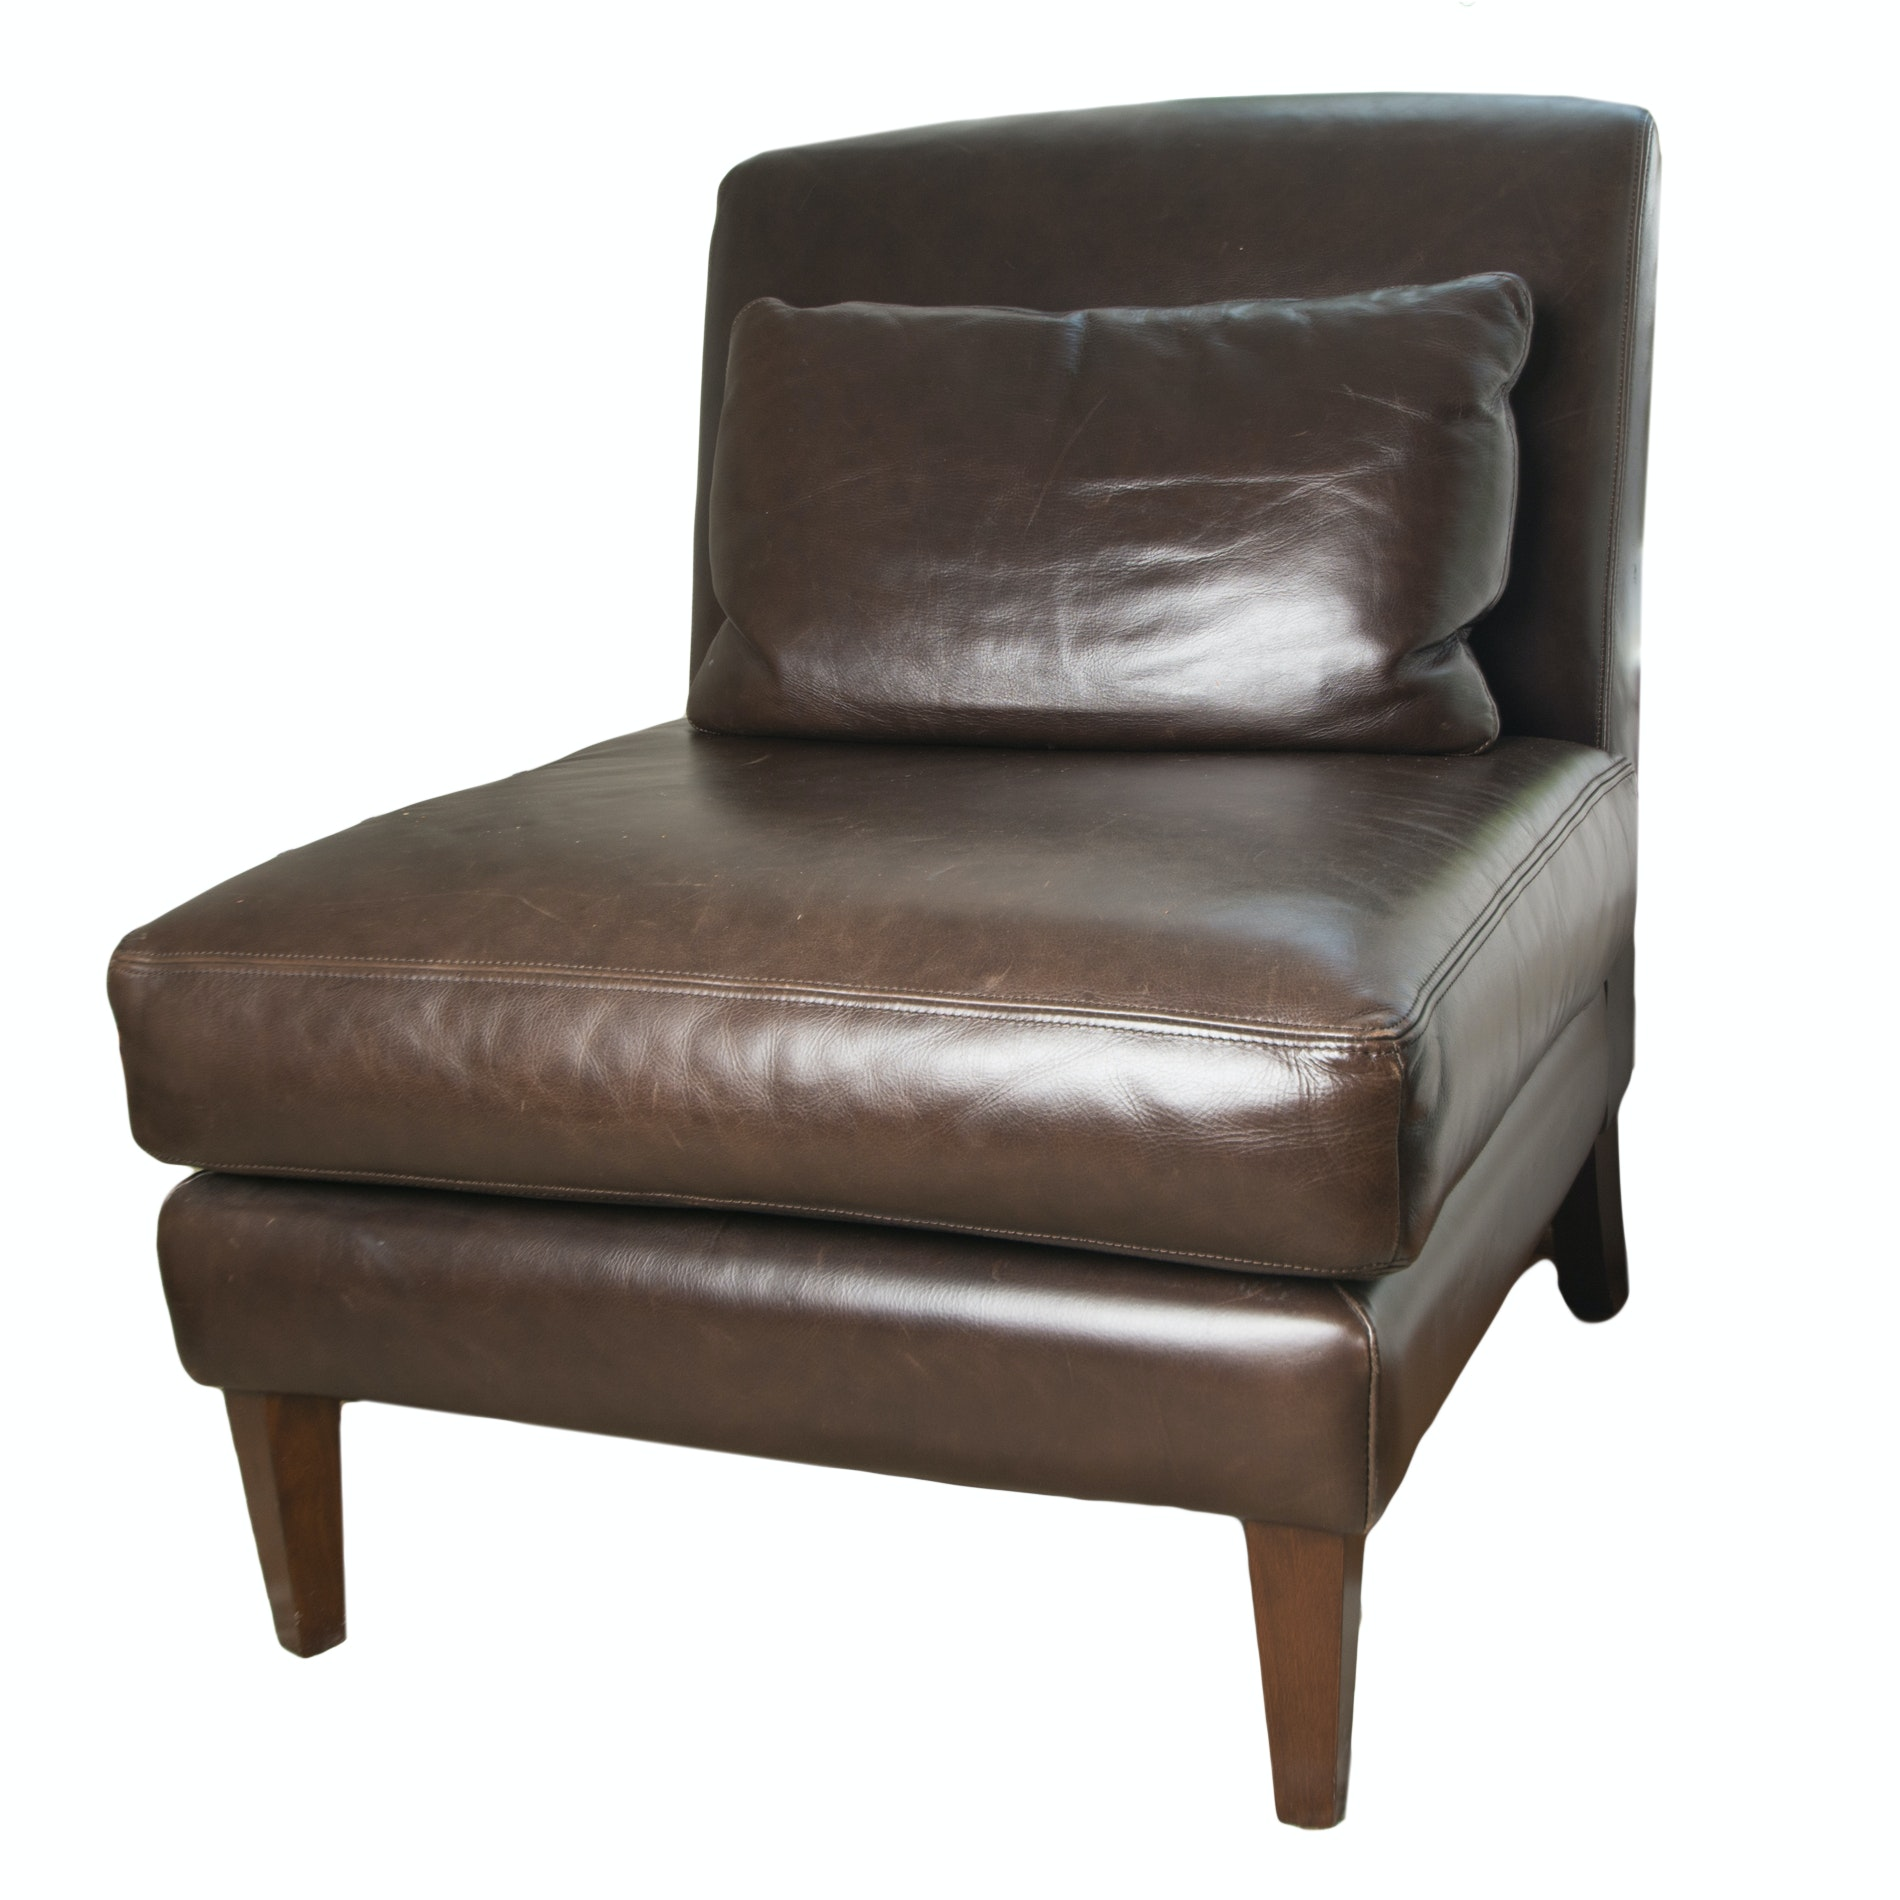 Pottery Barn Turner Leather Chair